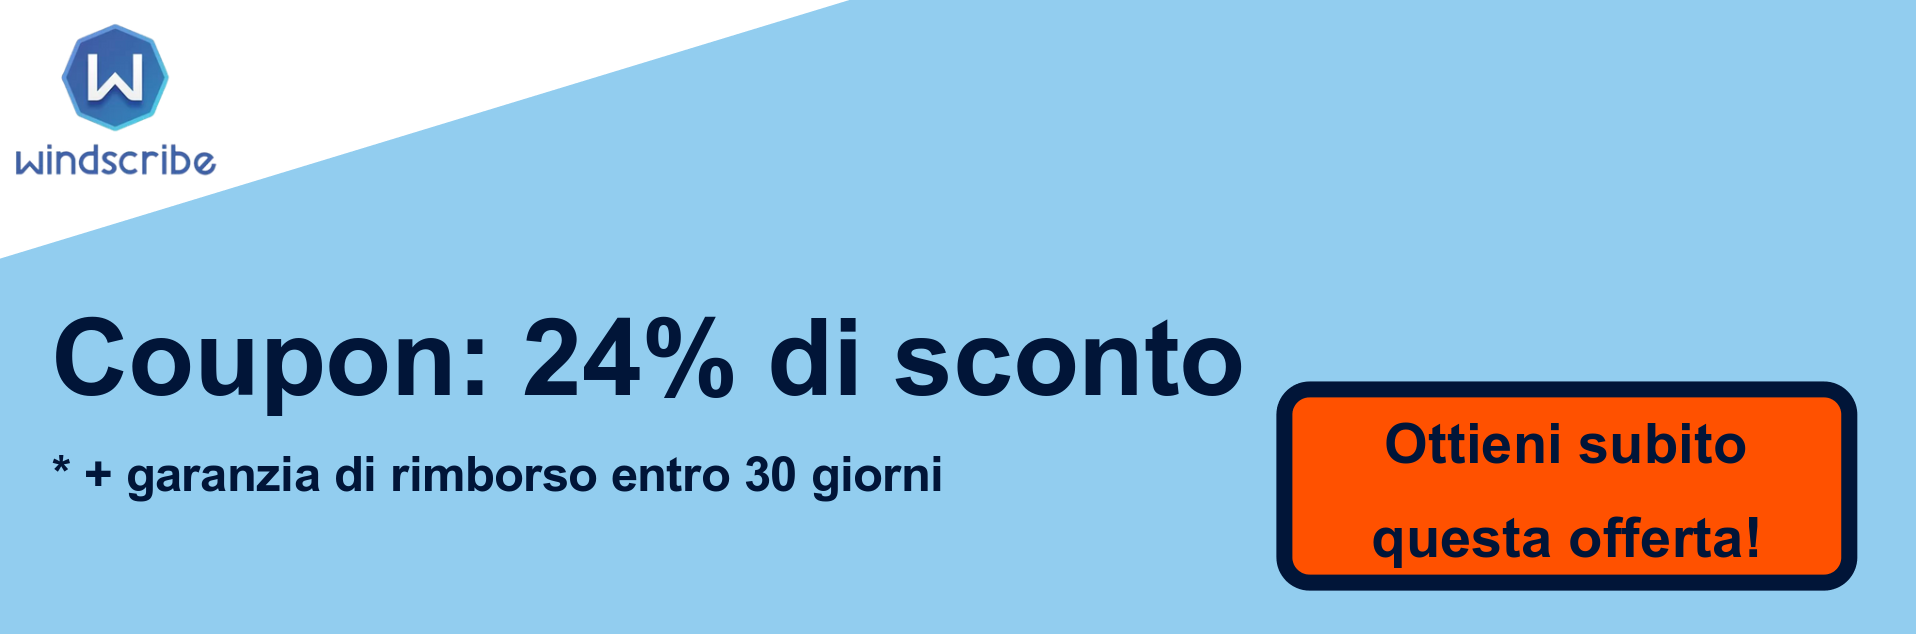 Banner coupon VPN WindScribe - 24% di sconto